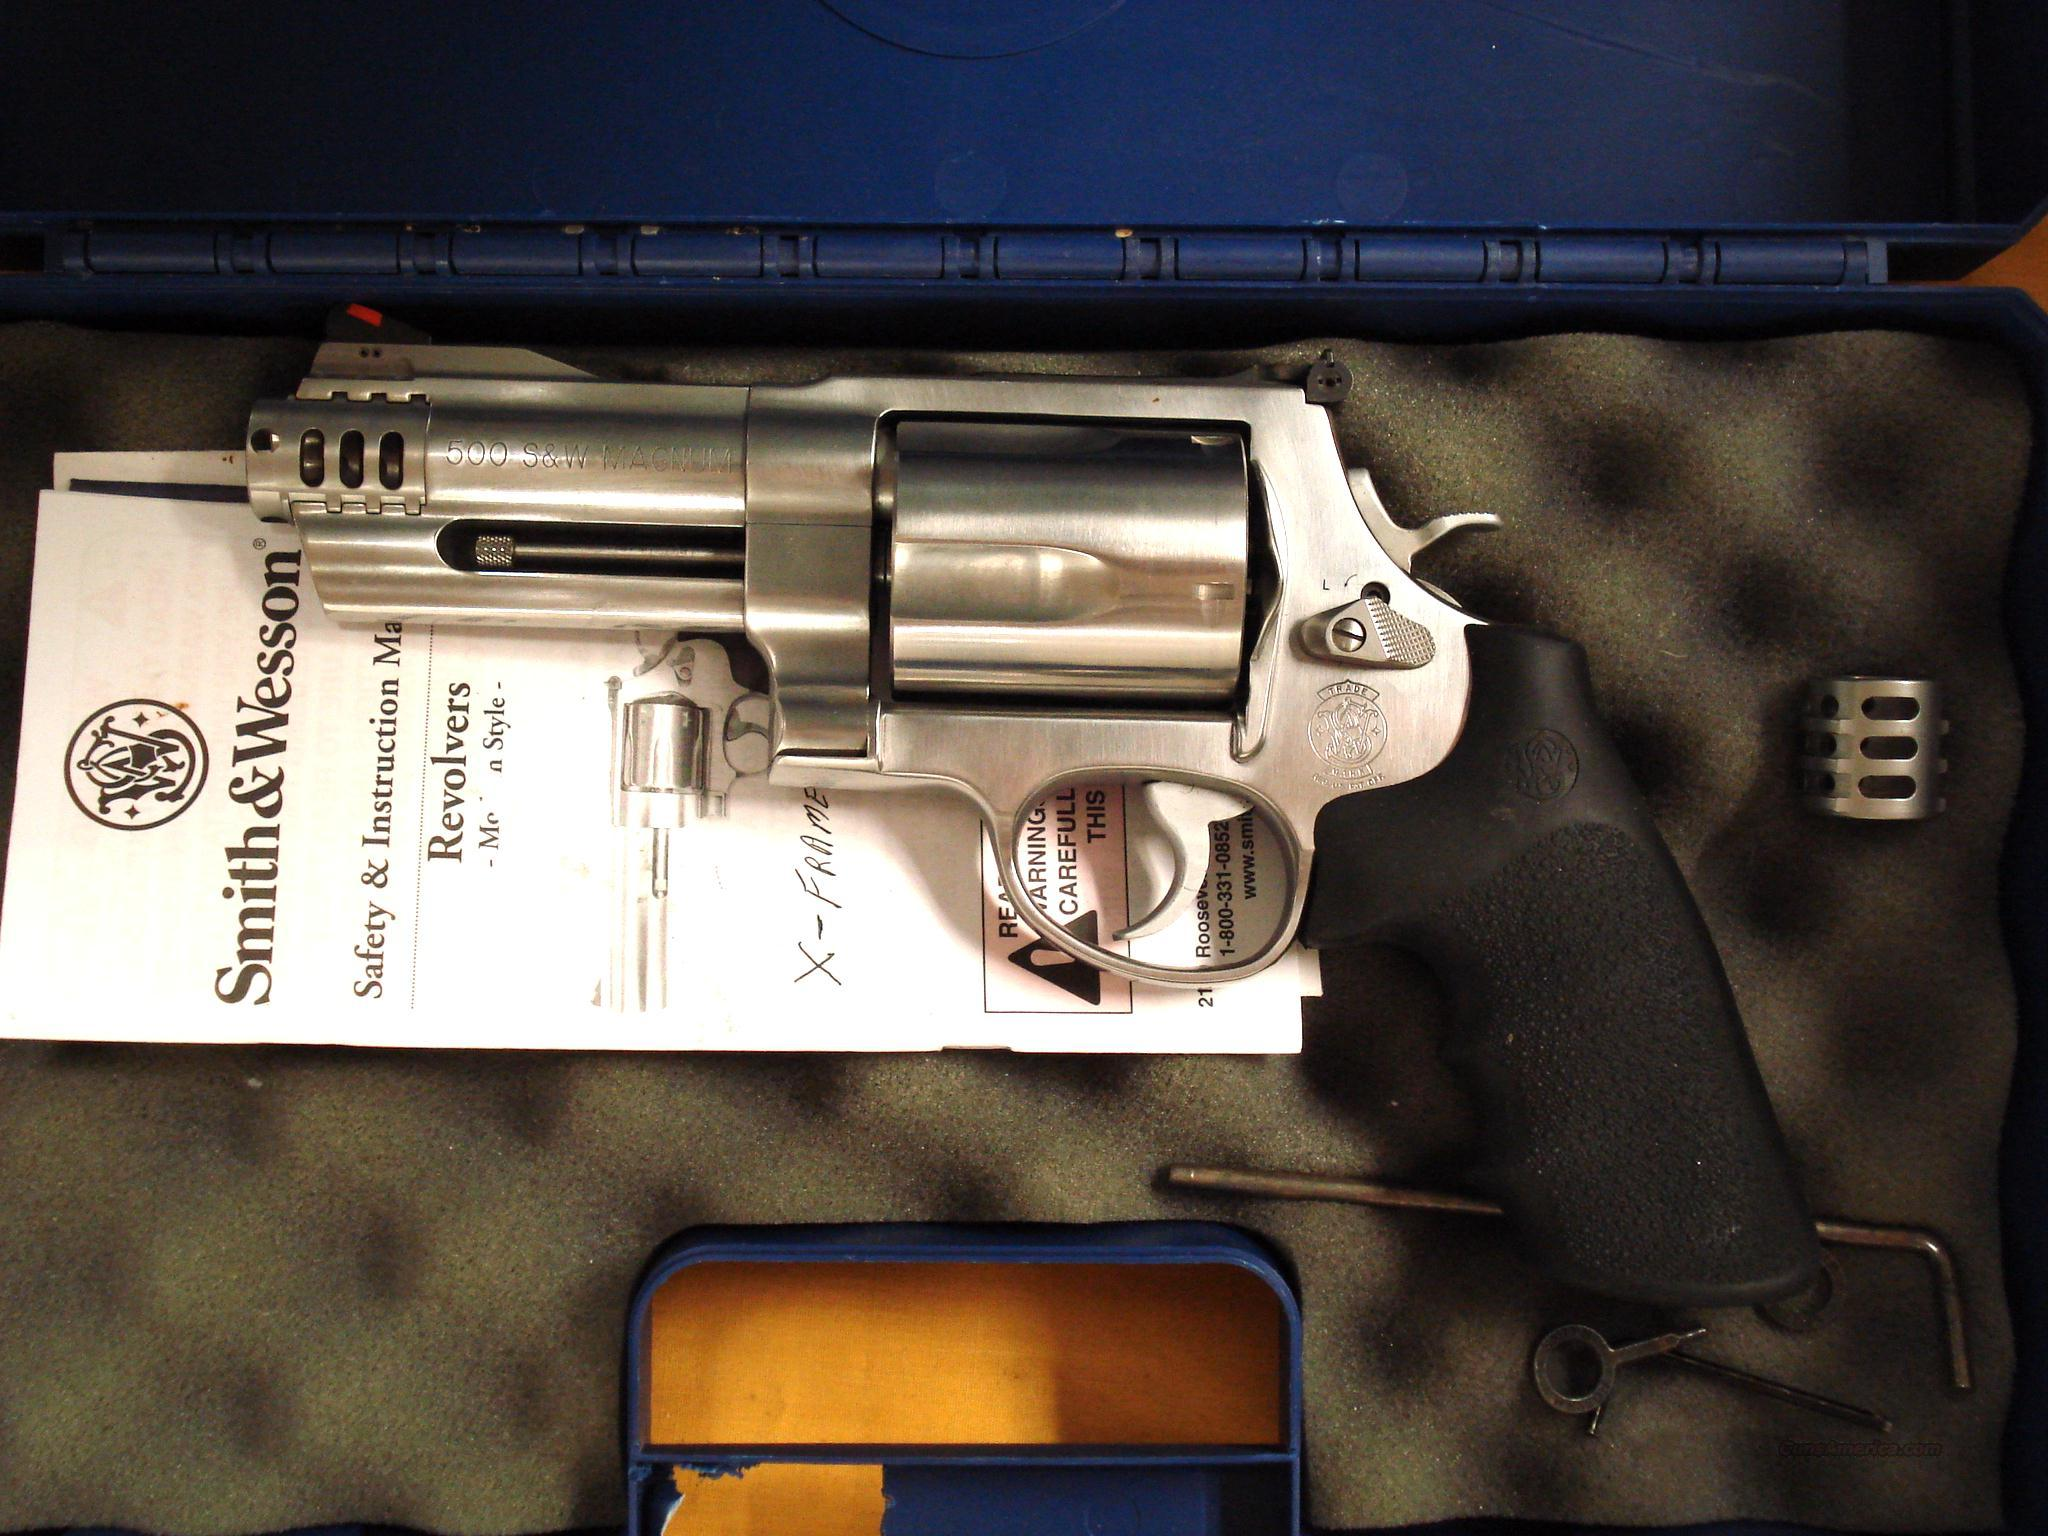 "S&W 500 .50CAL 4"" BARREL  Guns > Pistols > Smith & Wesson Revolvers > Full Frame Revolver"